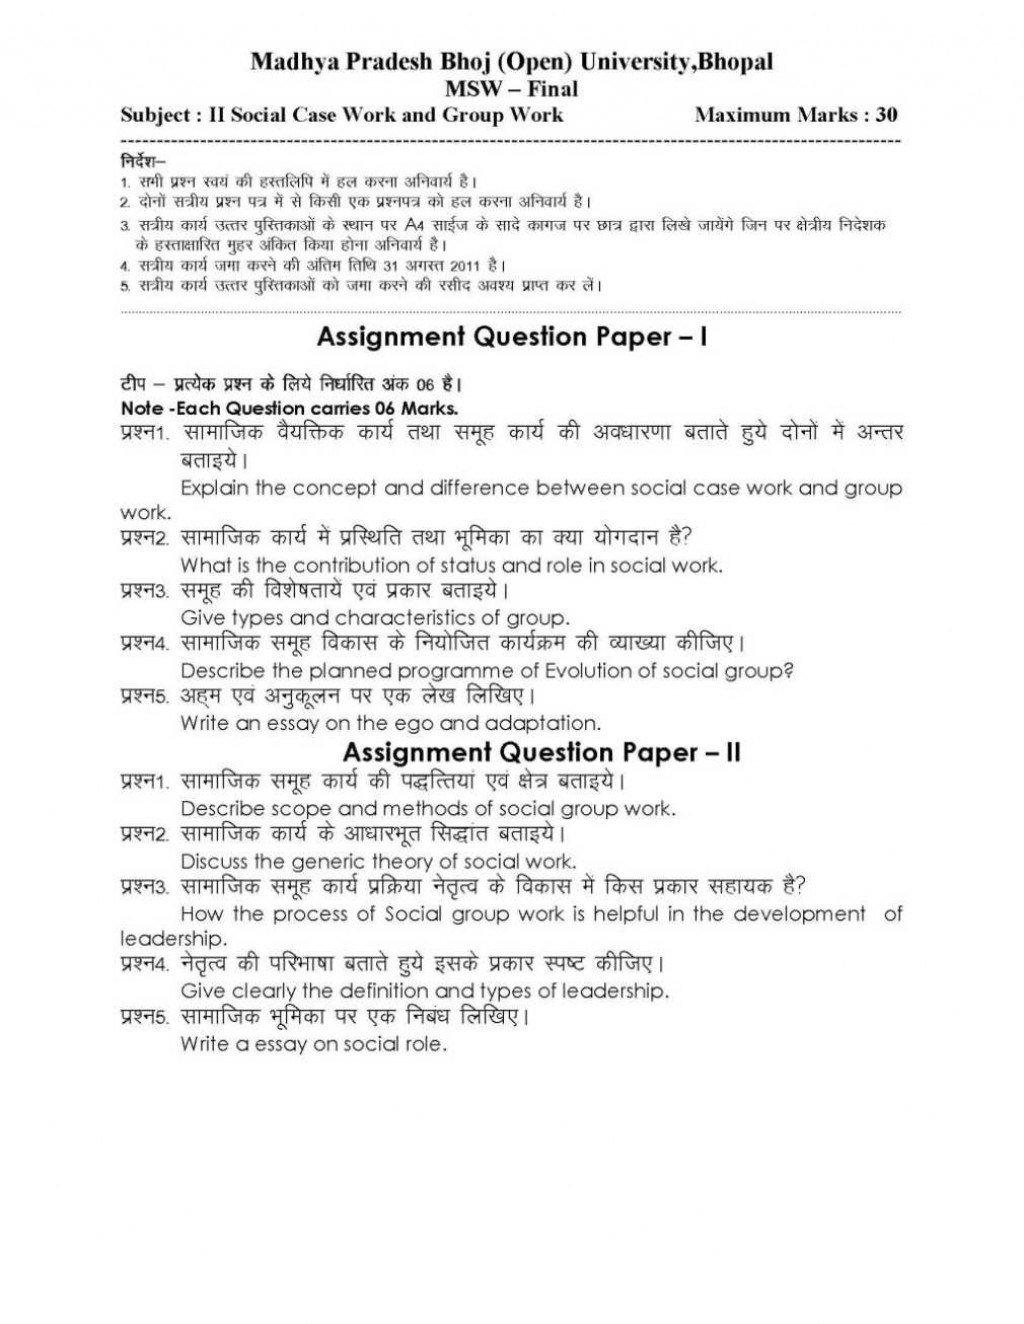 012 Bhoj University Bhopal Msw Definition Essays Surprising Essay Examples Free Love Friendship Large